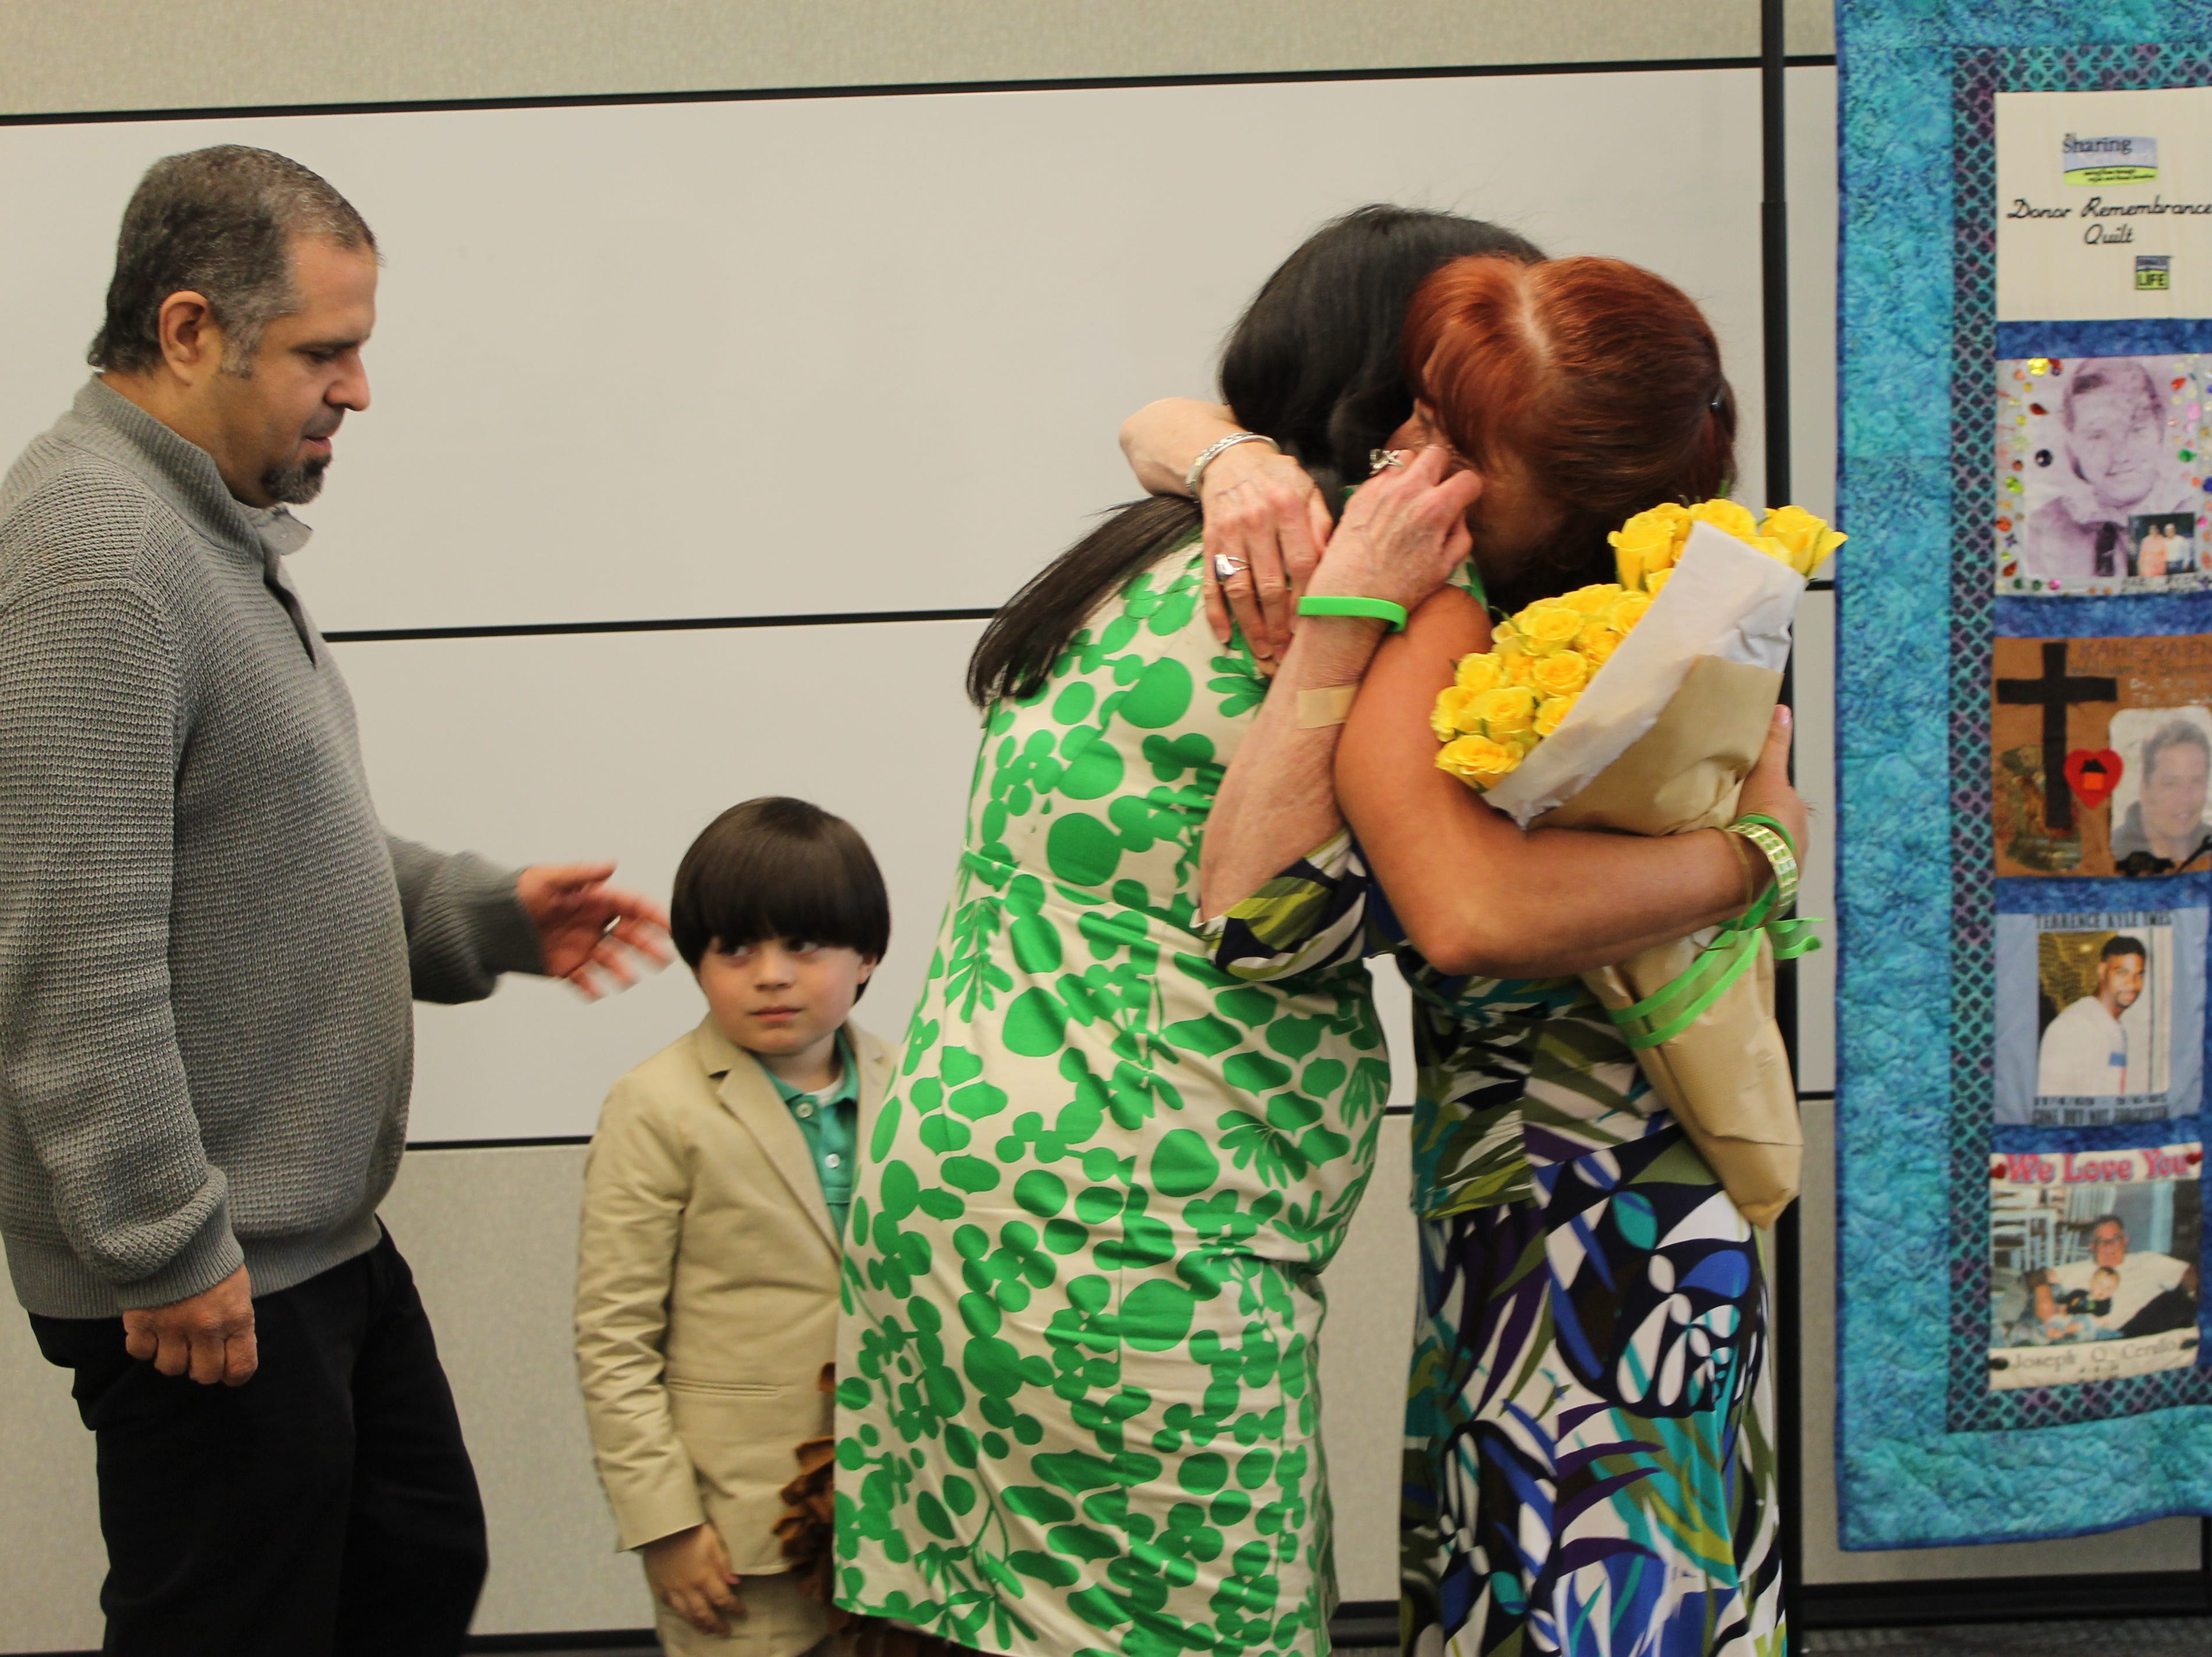 Dorothea Duffy (right) embraces Susan Callari Diamond upon their first meeting in 2016 as Michael Diamond (far left) and Jake Diamond look on.